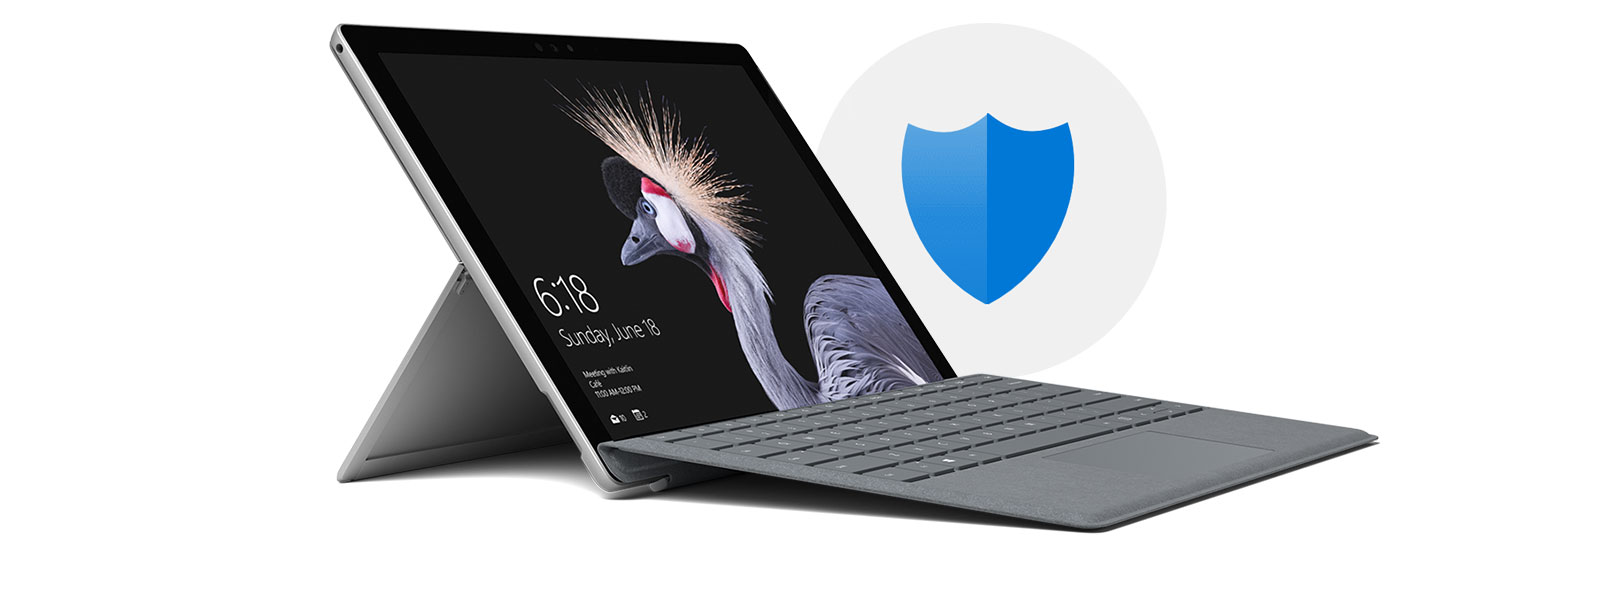 Image of Surface Pro and a security protection icon in the background